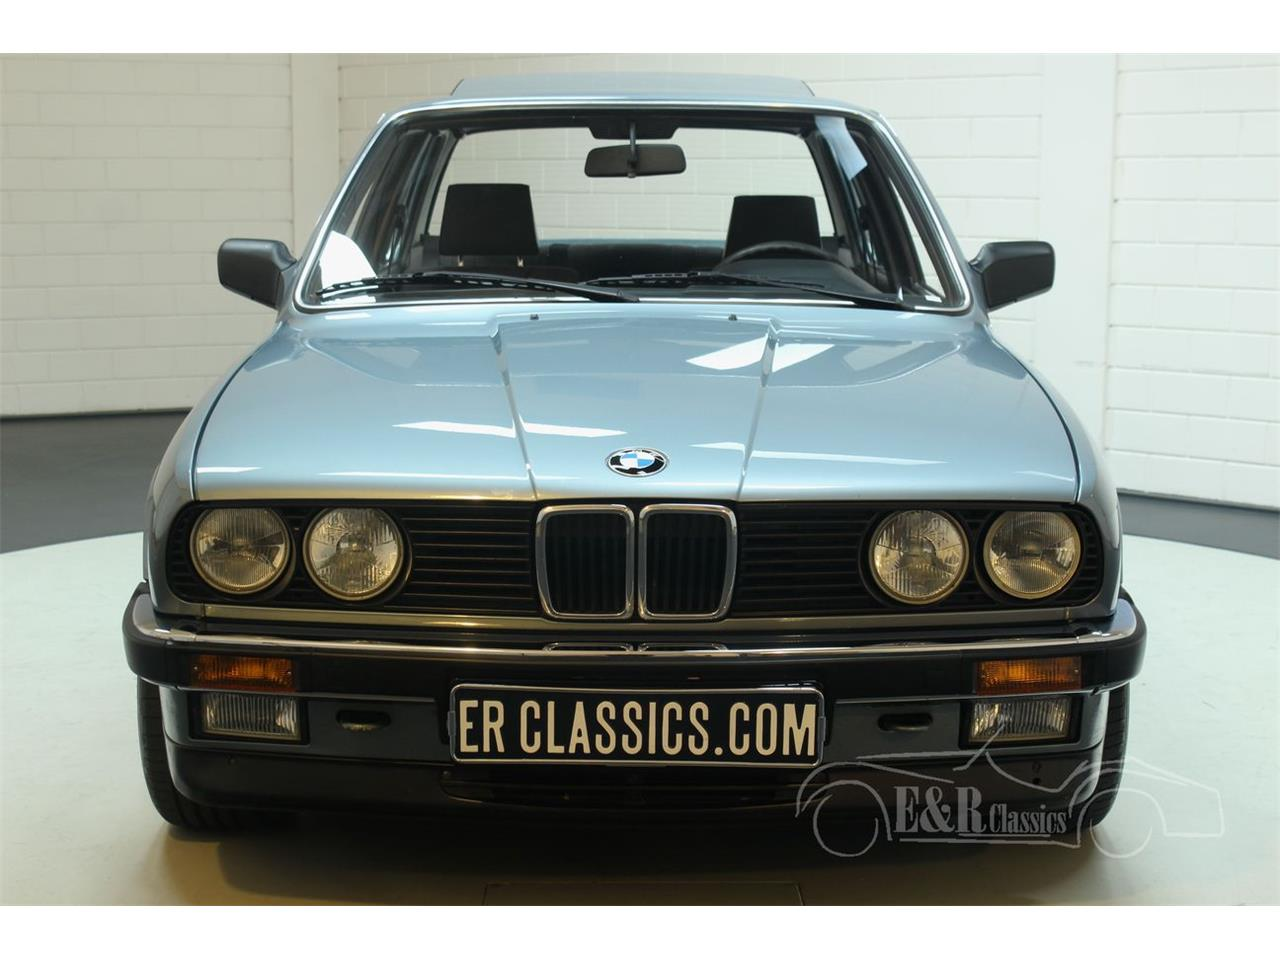 Large Picture of 1986 325i located in - Keine Angabe - - $33,850.00 Offered by E & R Classics - PGT1